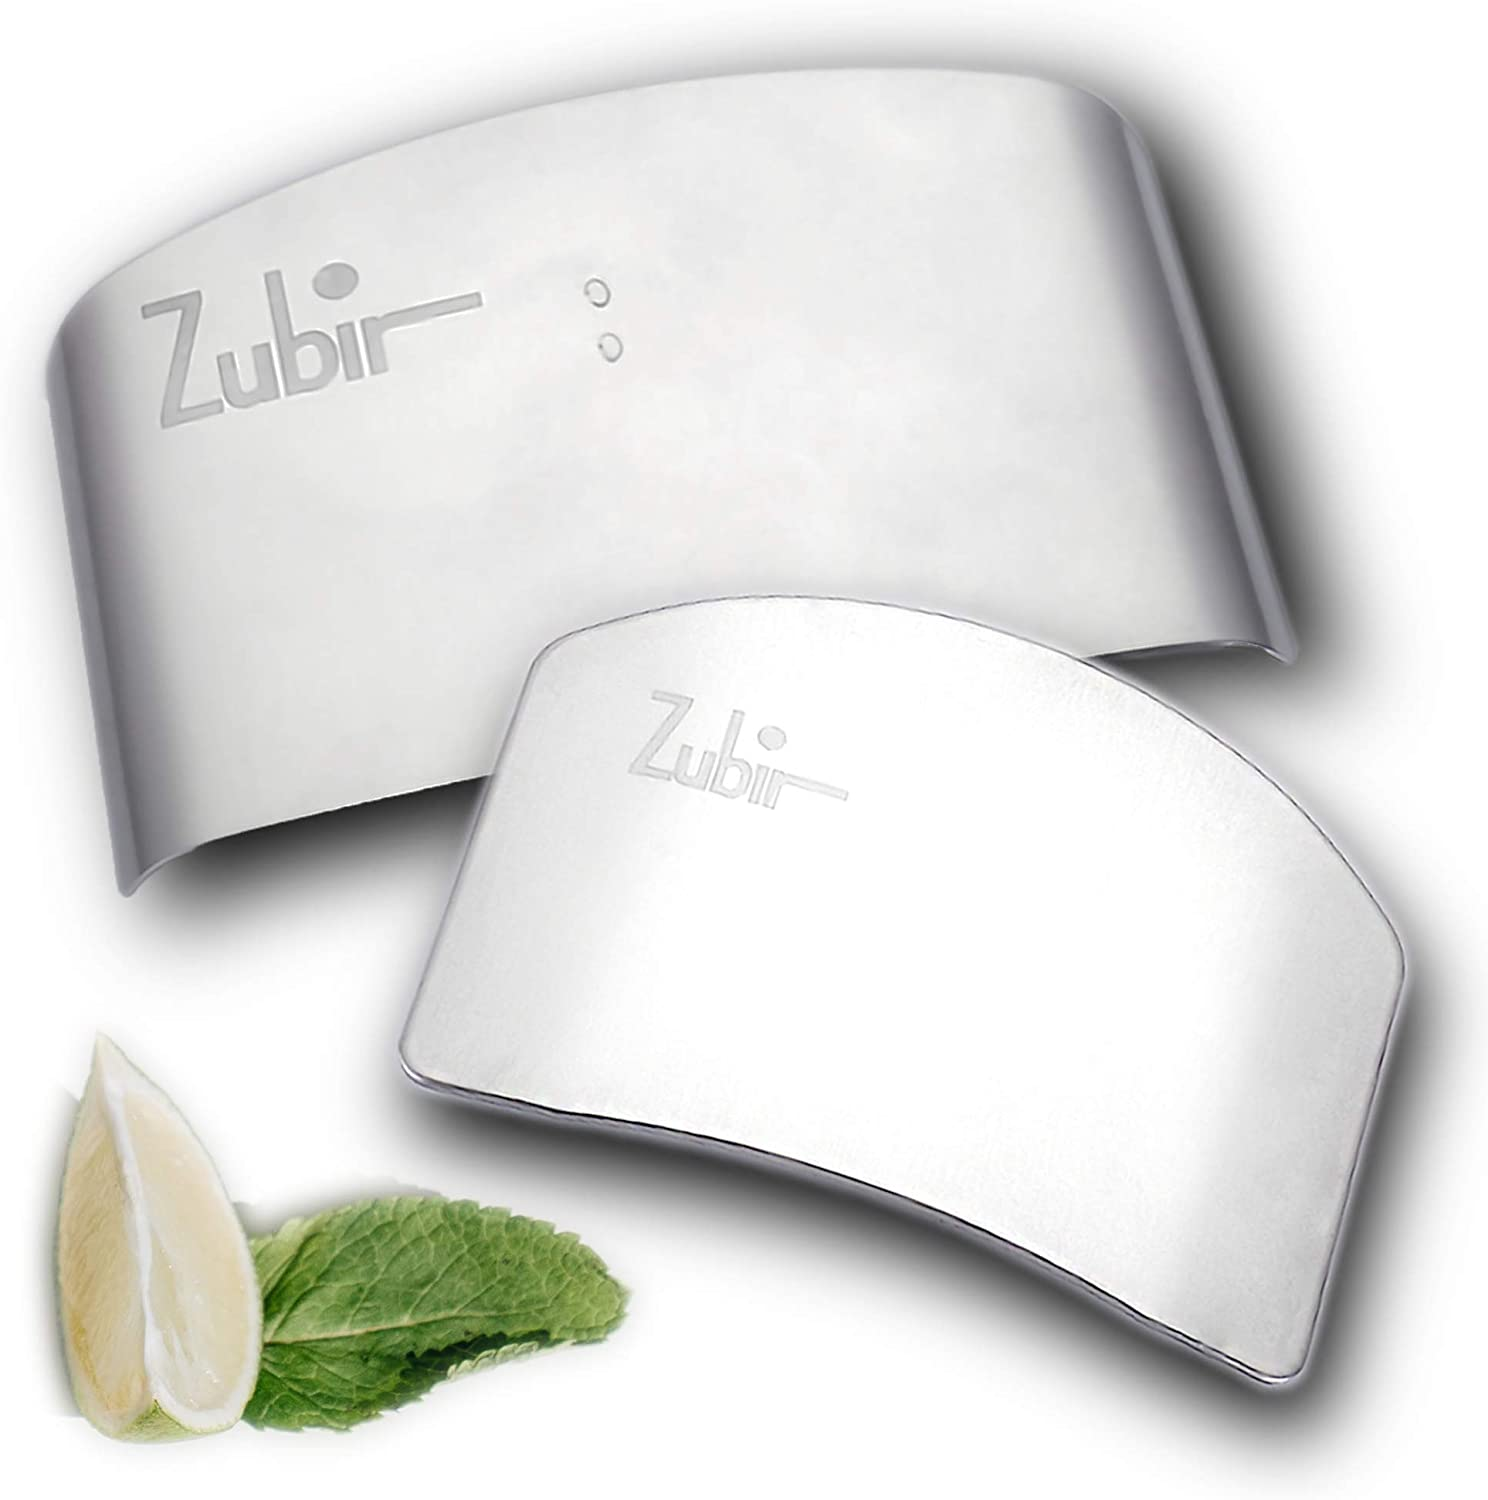 Zubir Finger Guards For Cutting When Slicing and Chopping, 2 Sizes